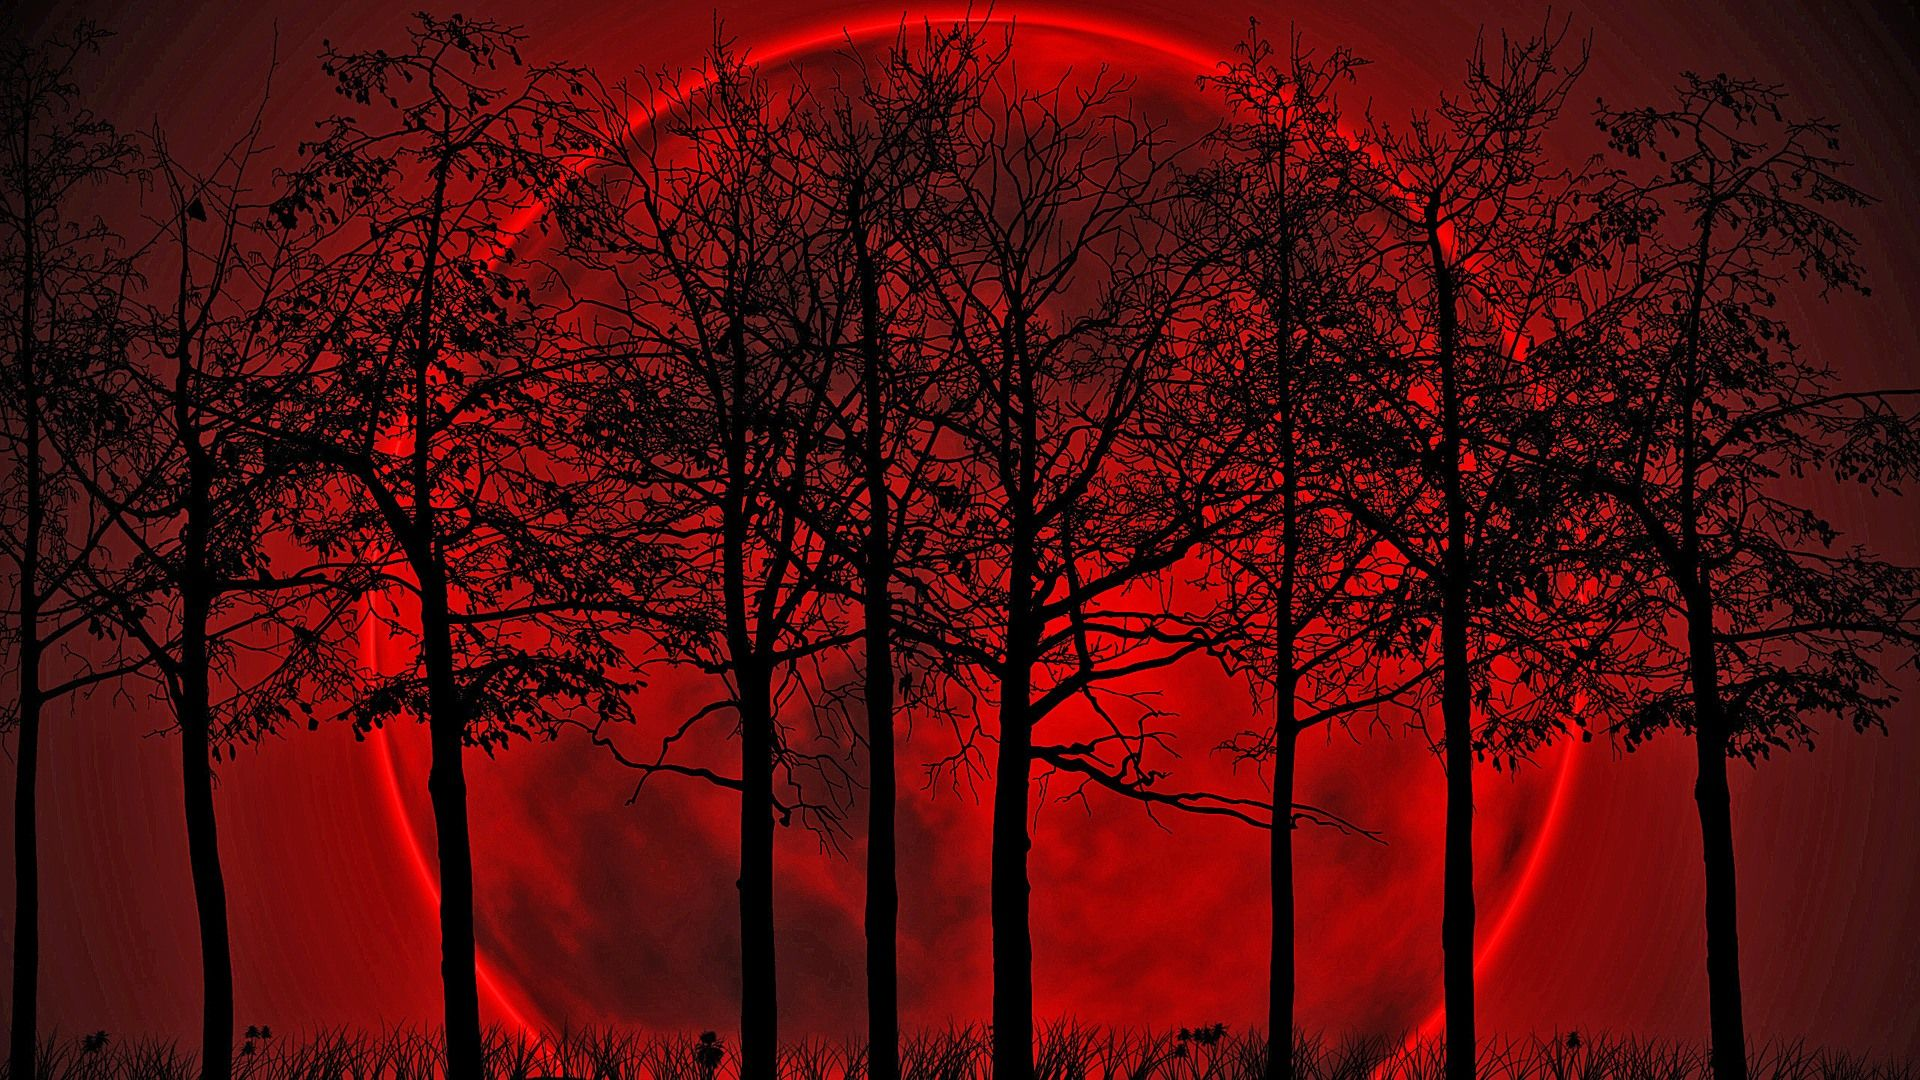 cool artistic red blood moon lp in 2019 red moon blood red moon rh pinterest com cool artistic images